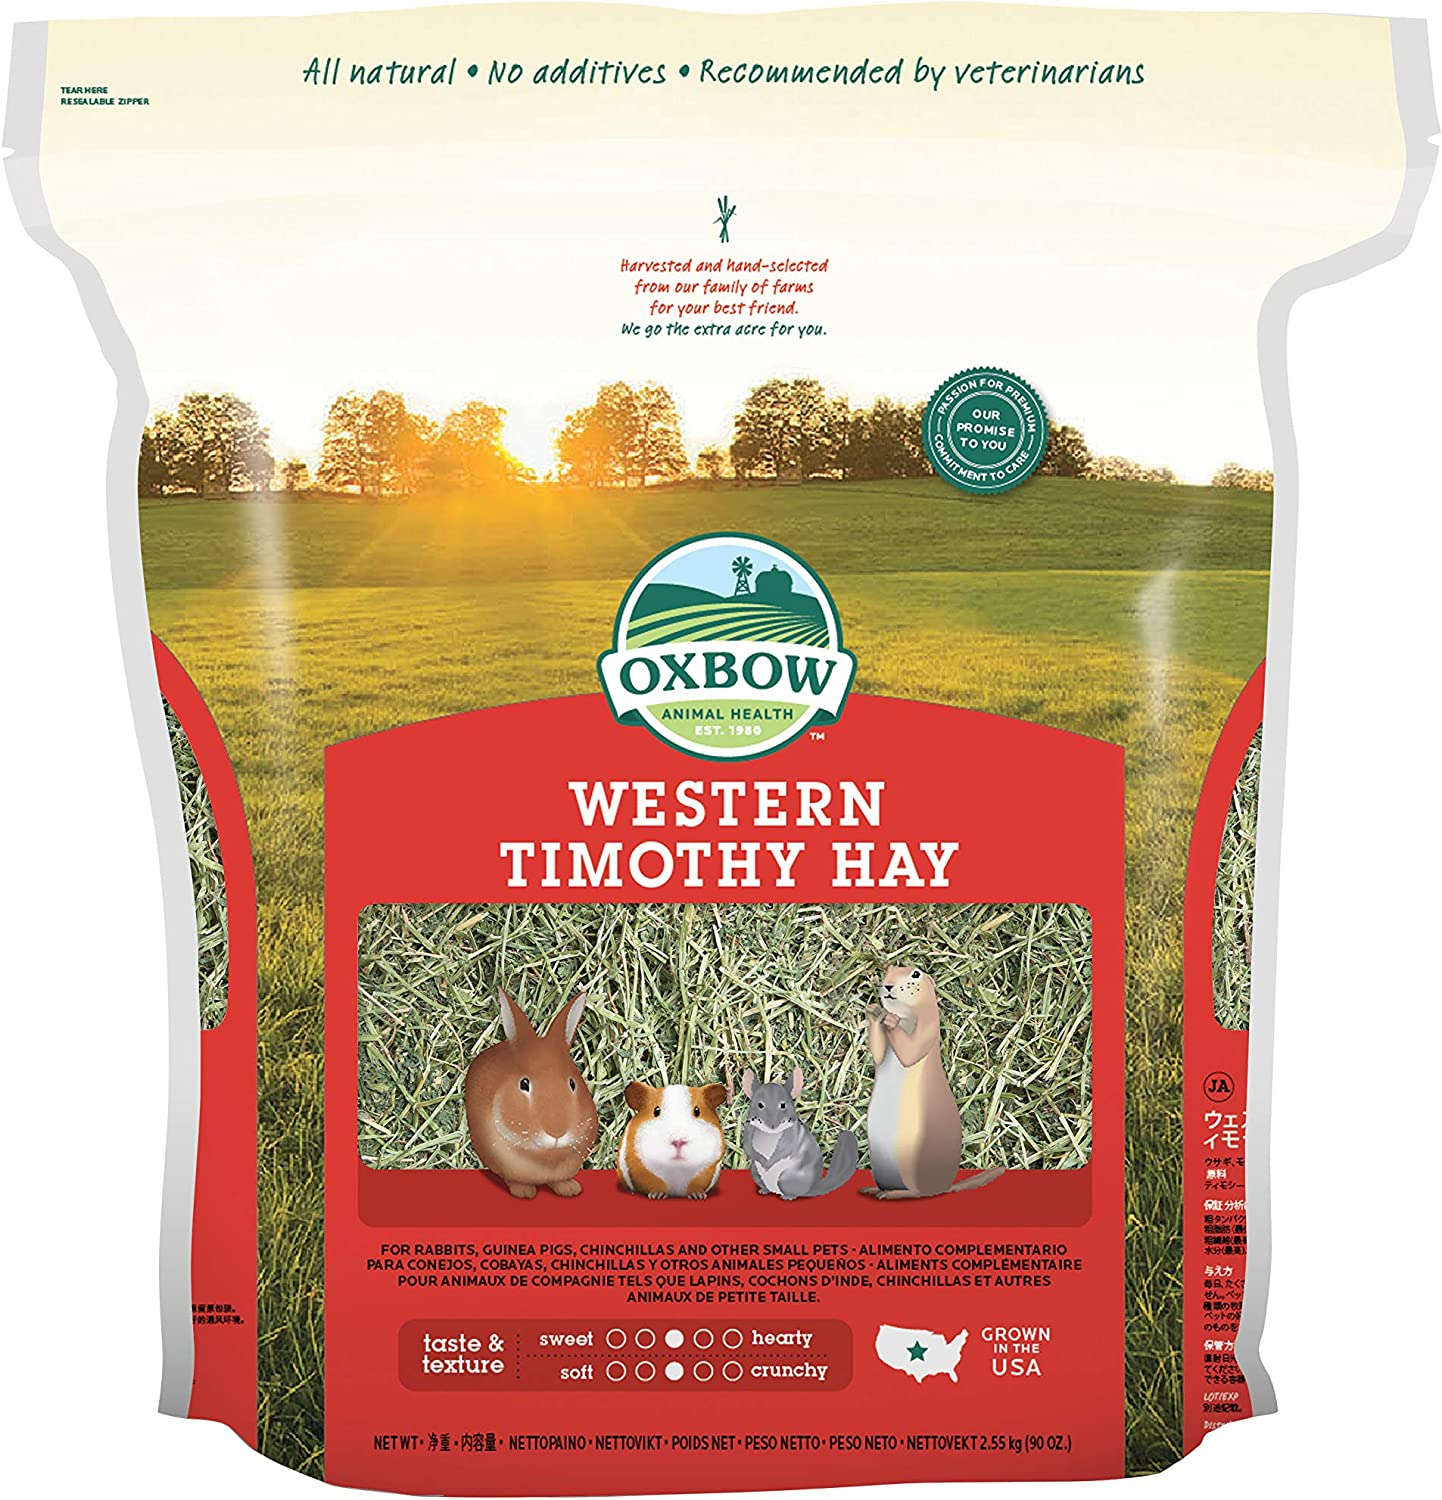 B006AYMMRY Oxbow Animal Health Western Timothy Hay For Pets, 90-Ounce 81K8ScHyNgL